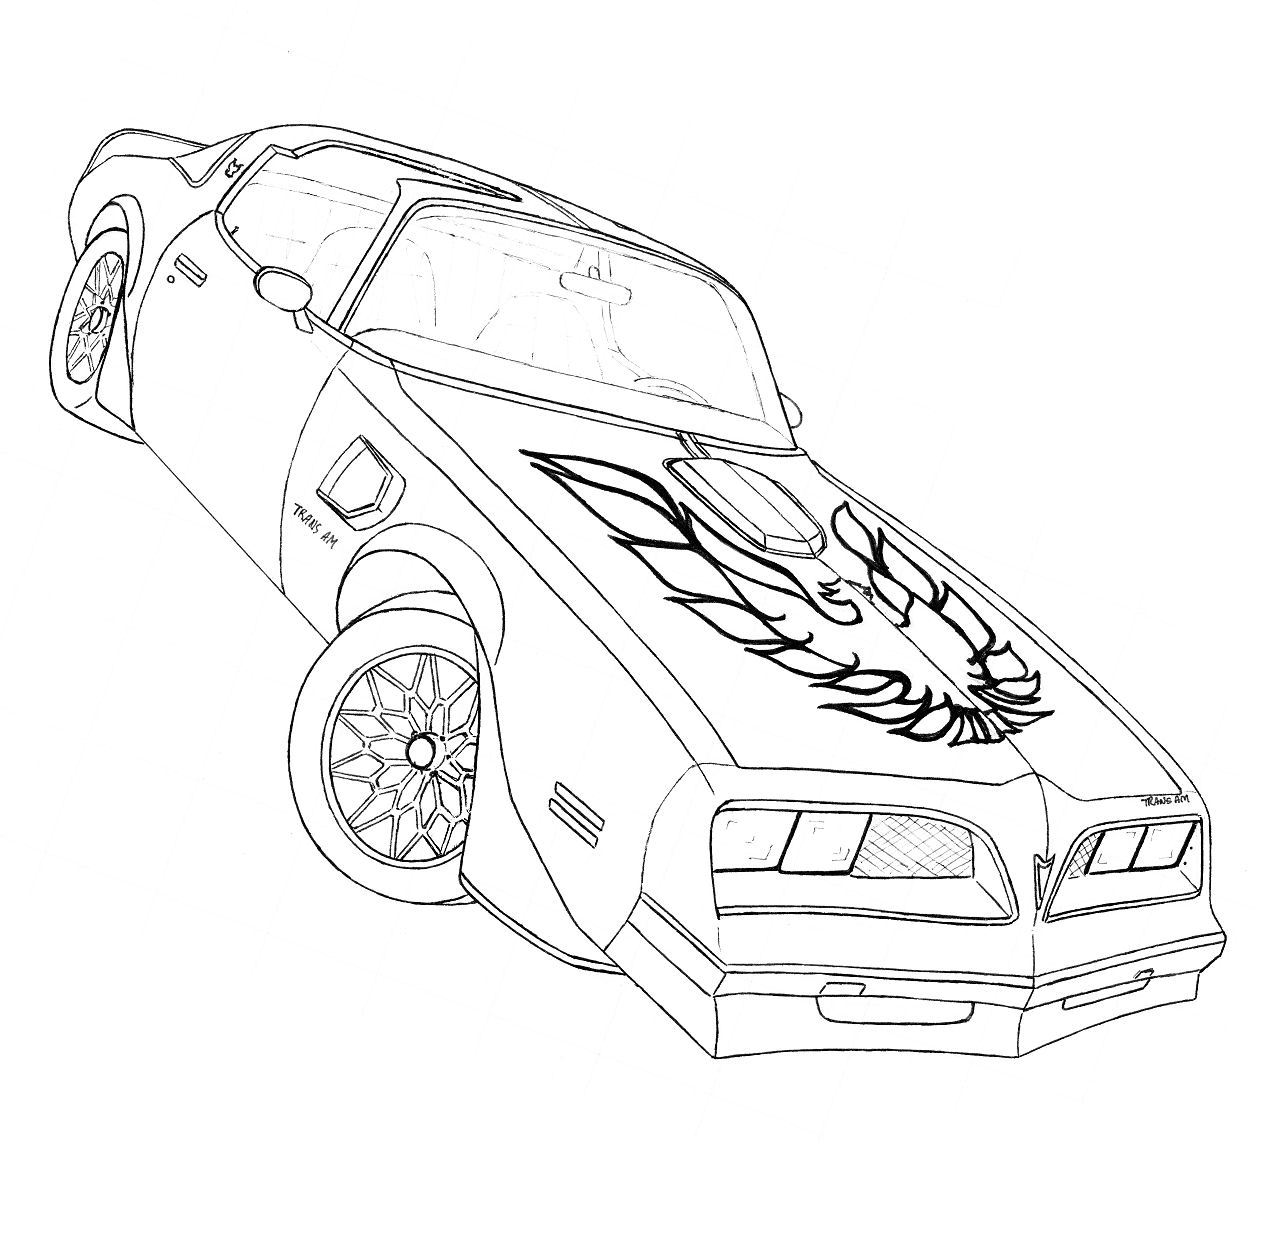 Trans am drawing at getdrawings free for personal use trans am pontiac firebird drawings 1979 firebird coloring pages